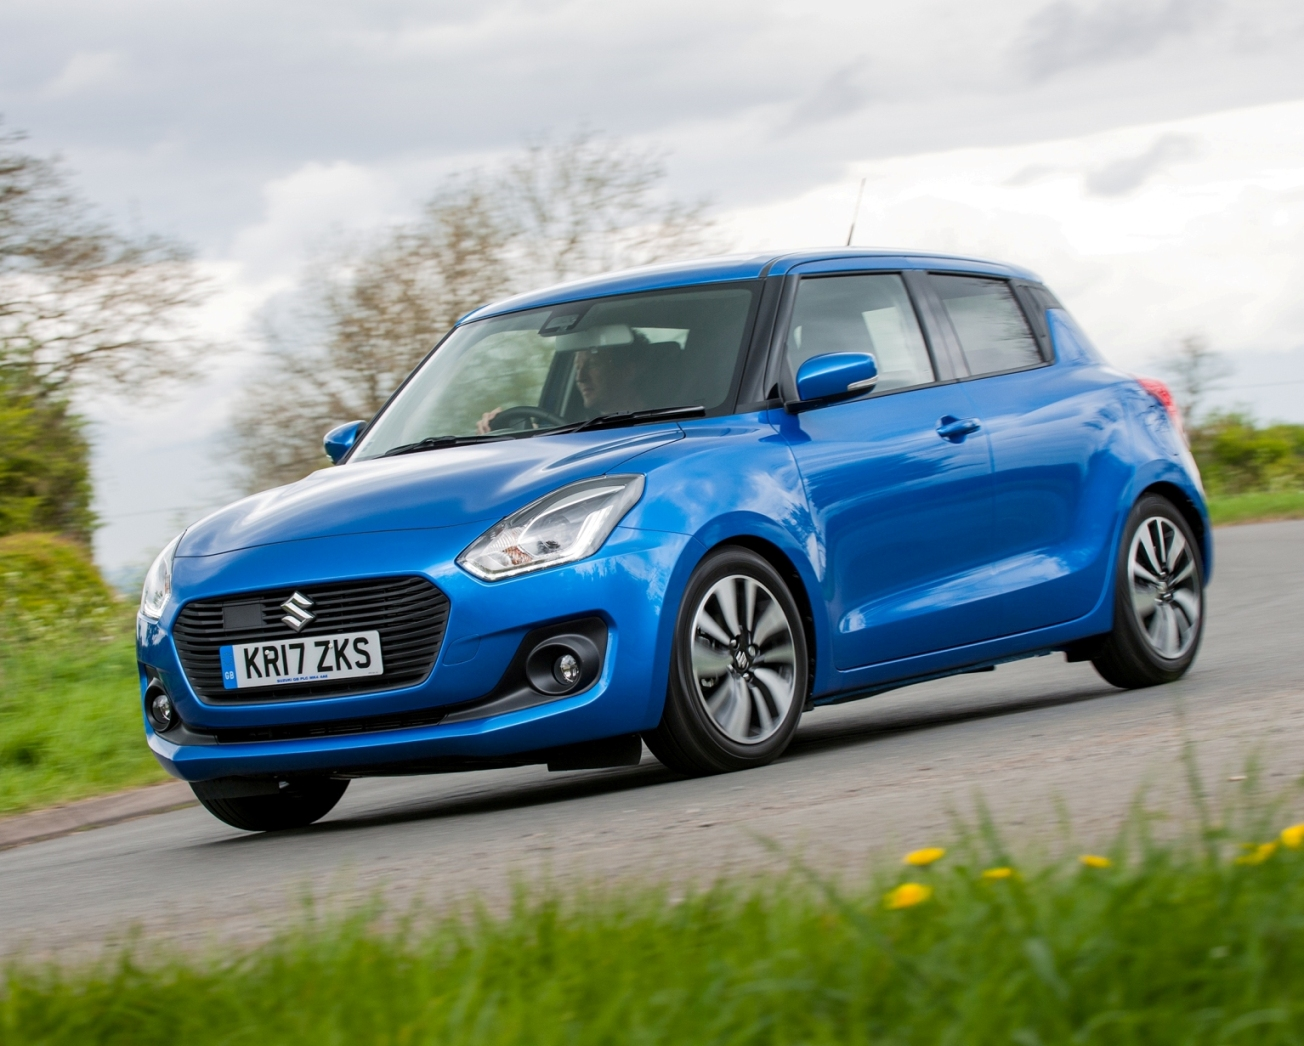 Latest Suzuki Swift Road Test Wheels Alive 2000 Transmission Sd Sensor Third Generation Now On Sale In The Uk